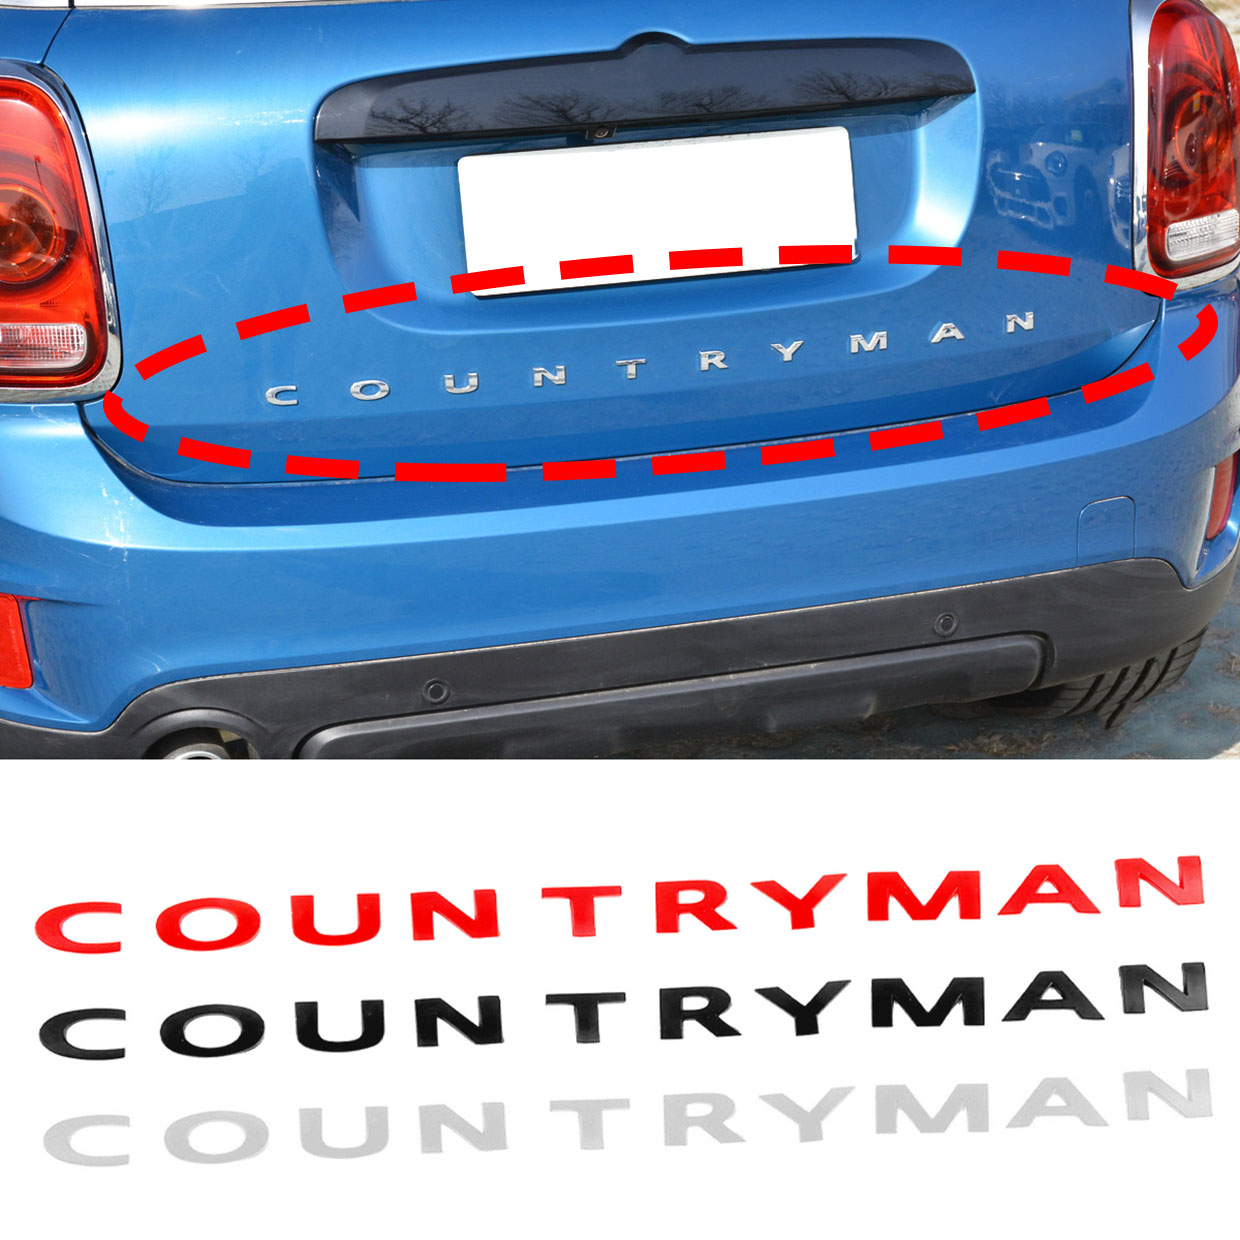 High Quality Car Tail Metal 3D Letters Sticker And Emblem Rear Trunk For MINI Cooper Countryman R60 F60 Car Styling Accessories